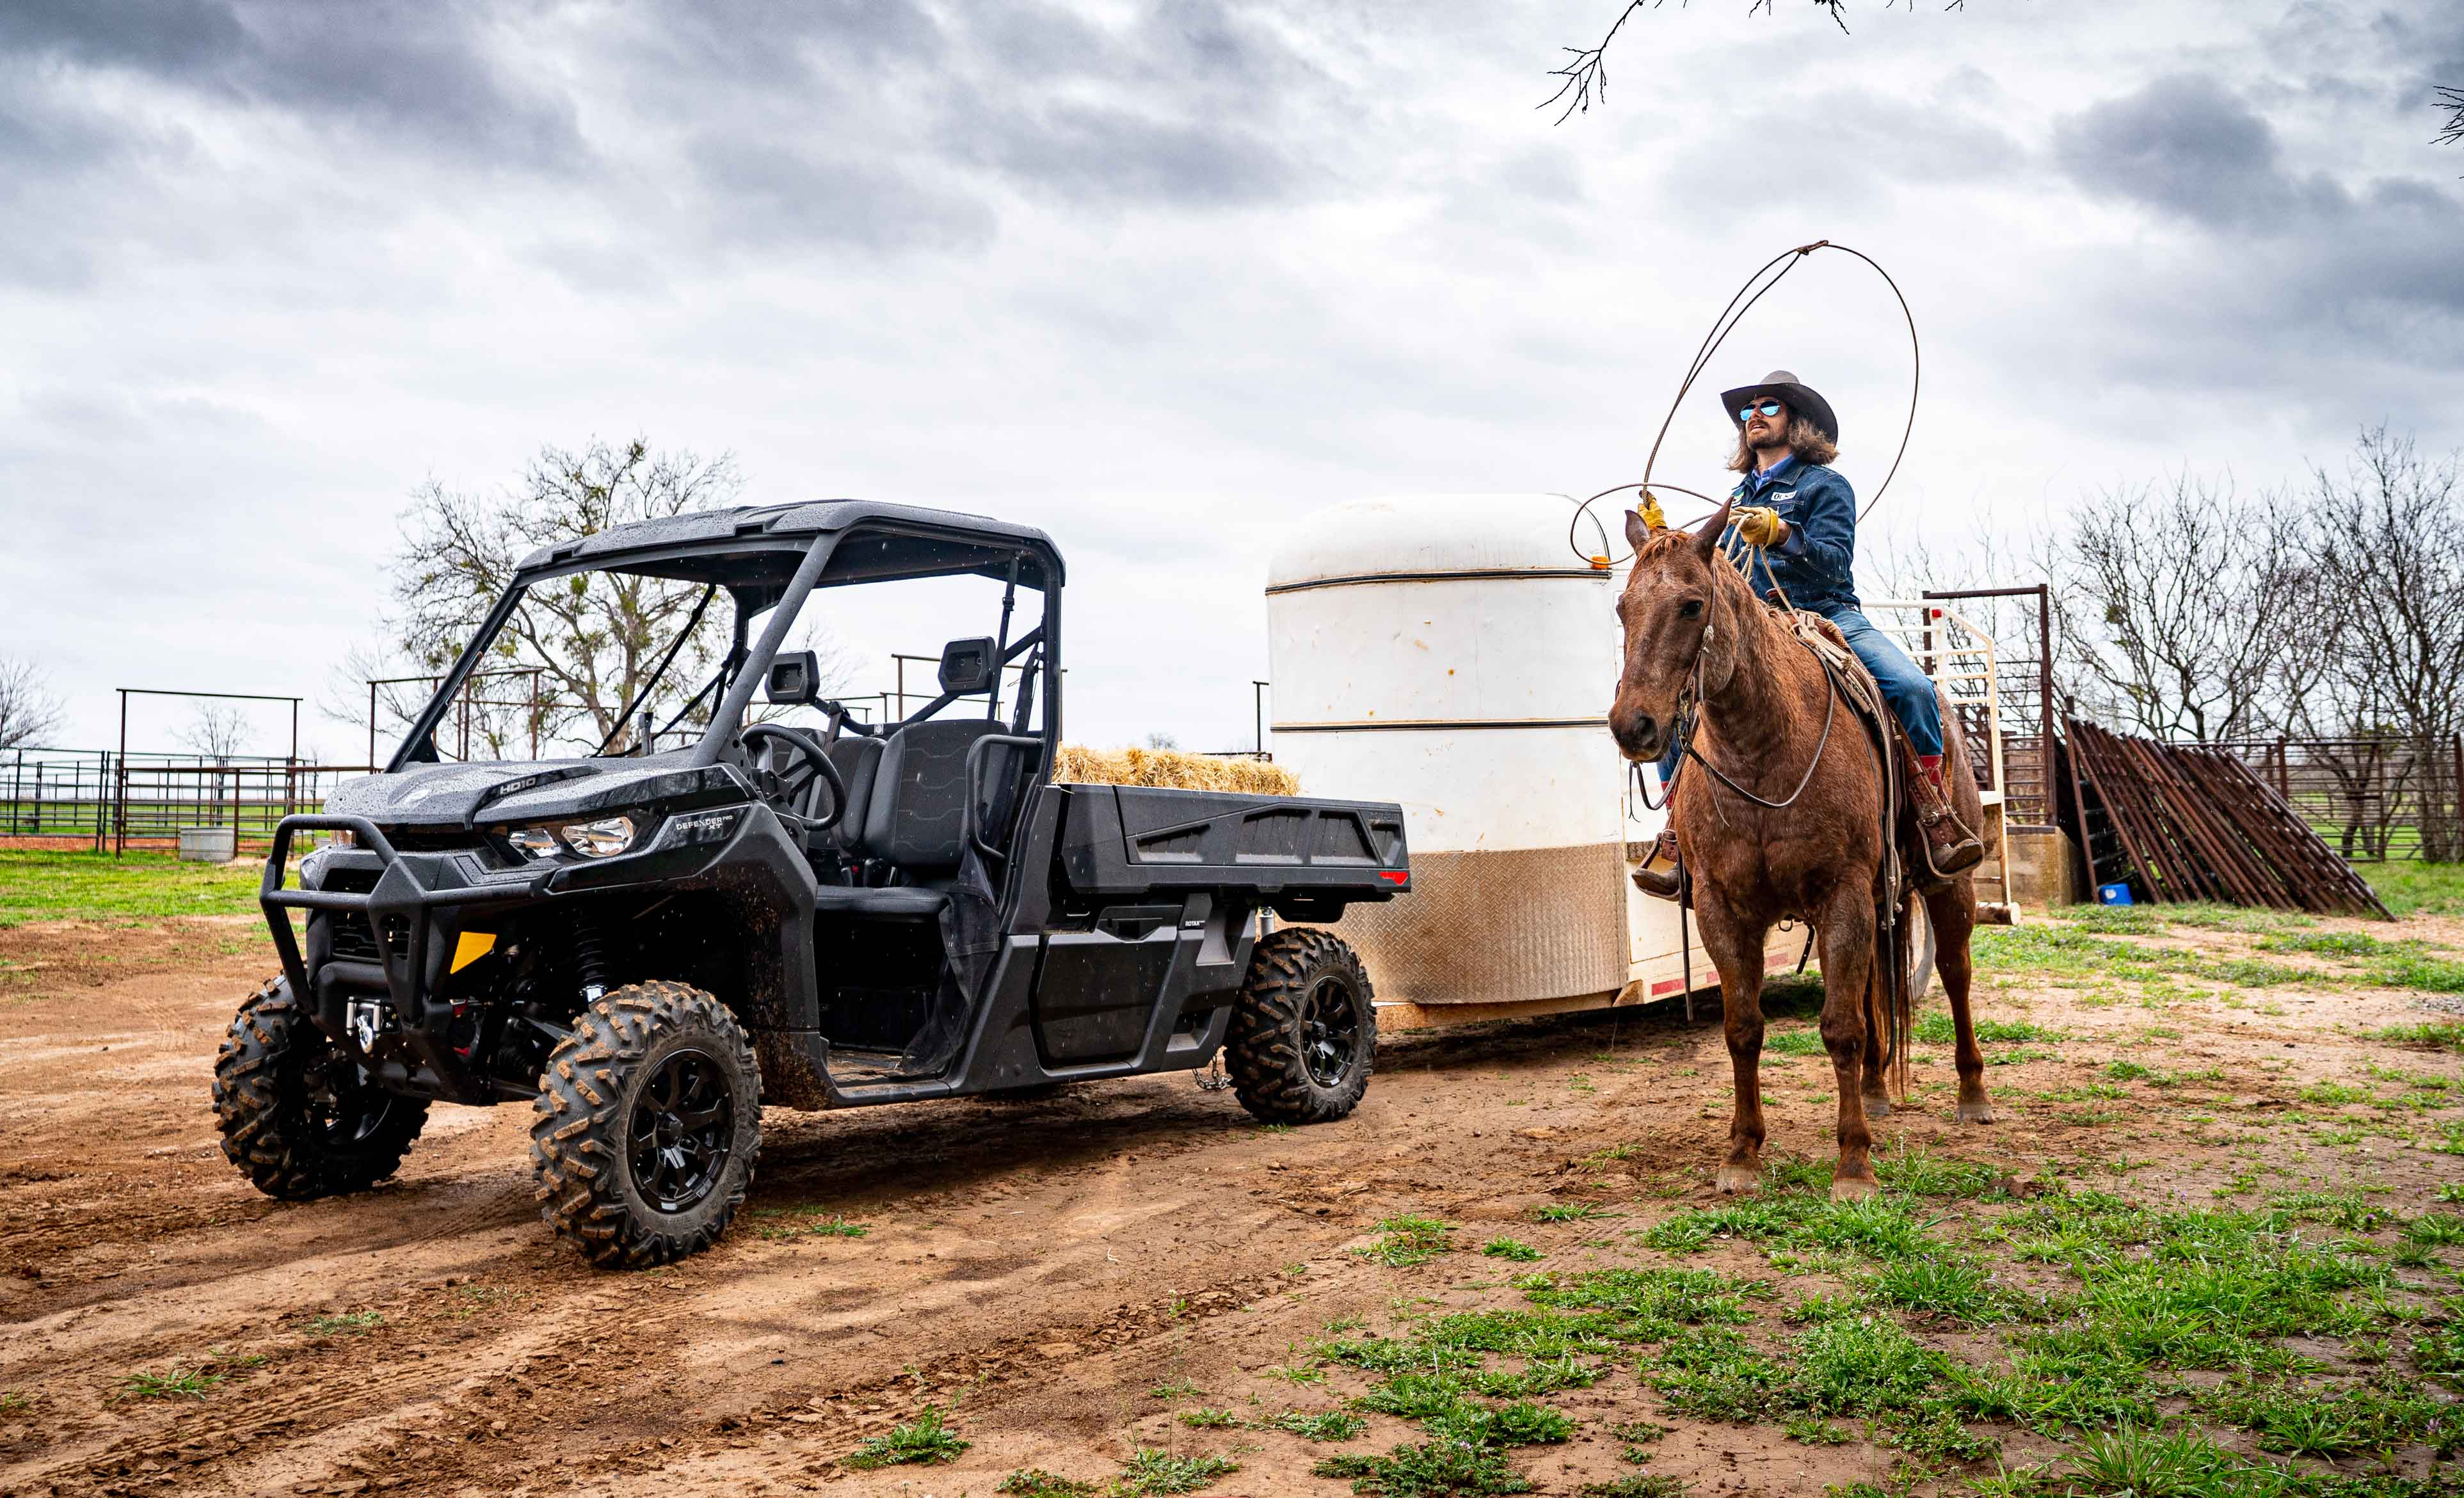 Can-Am Defender side-by-side vehicle ranching towing trailer livestock